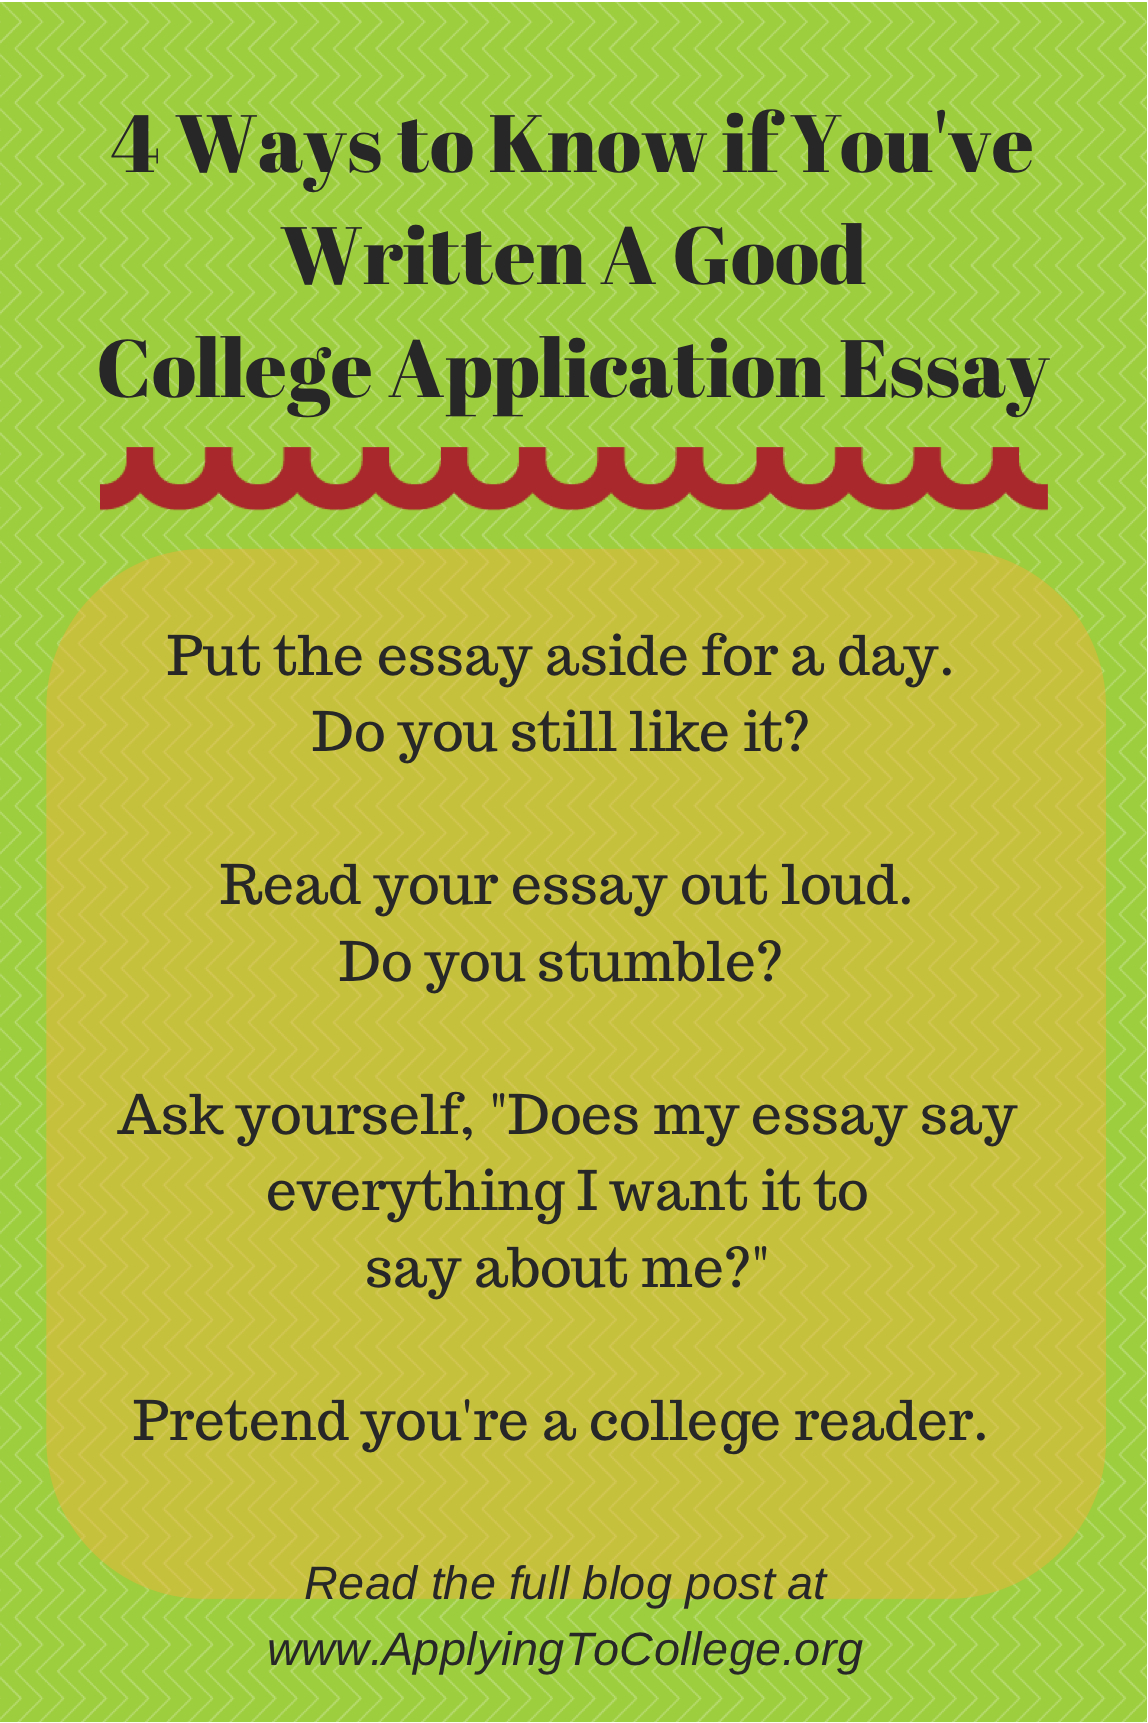 ways to know if you ve written a good college essay applying  4 ways to know if you ve written a good college application essay how